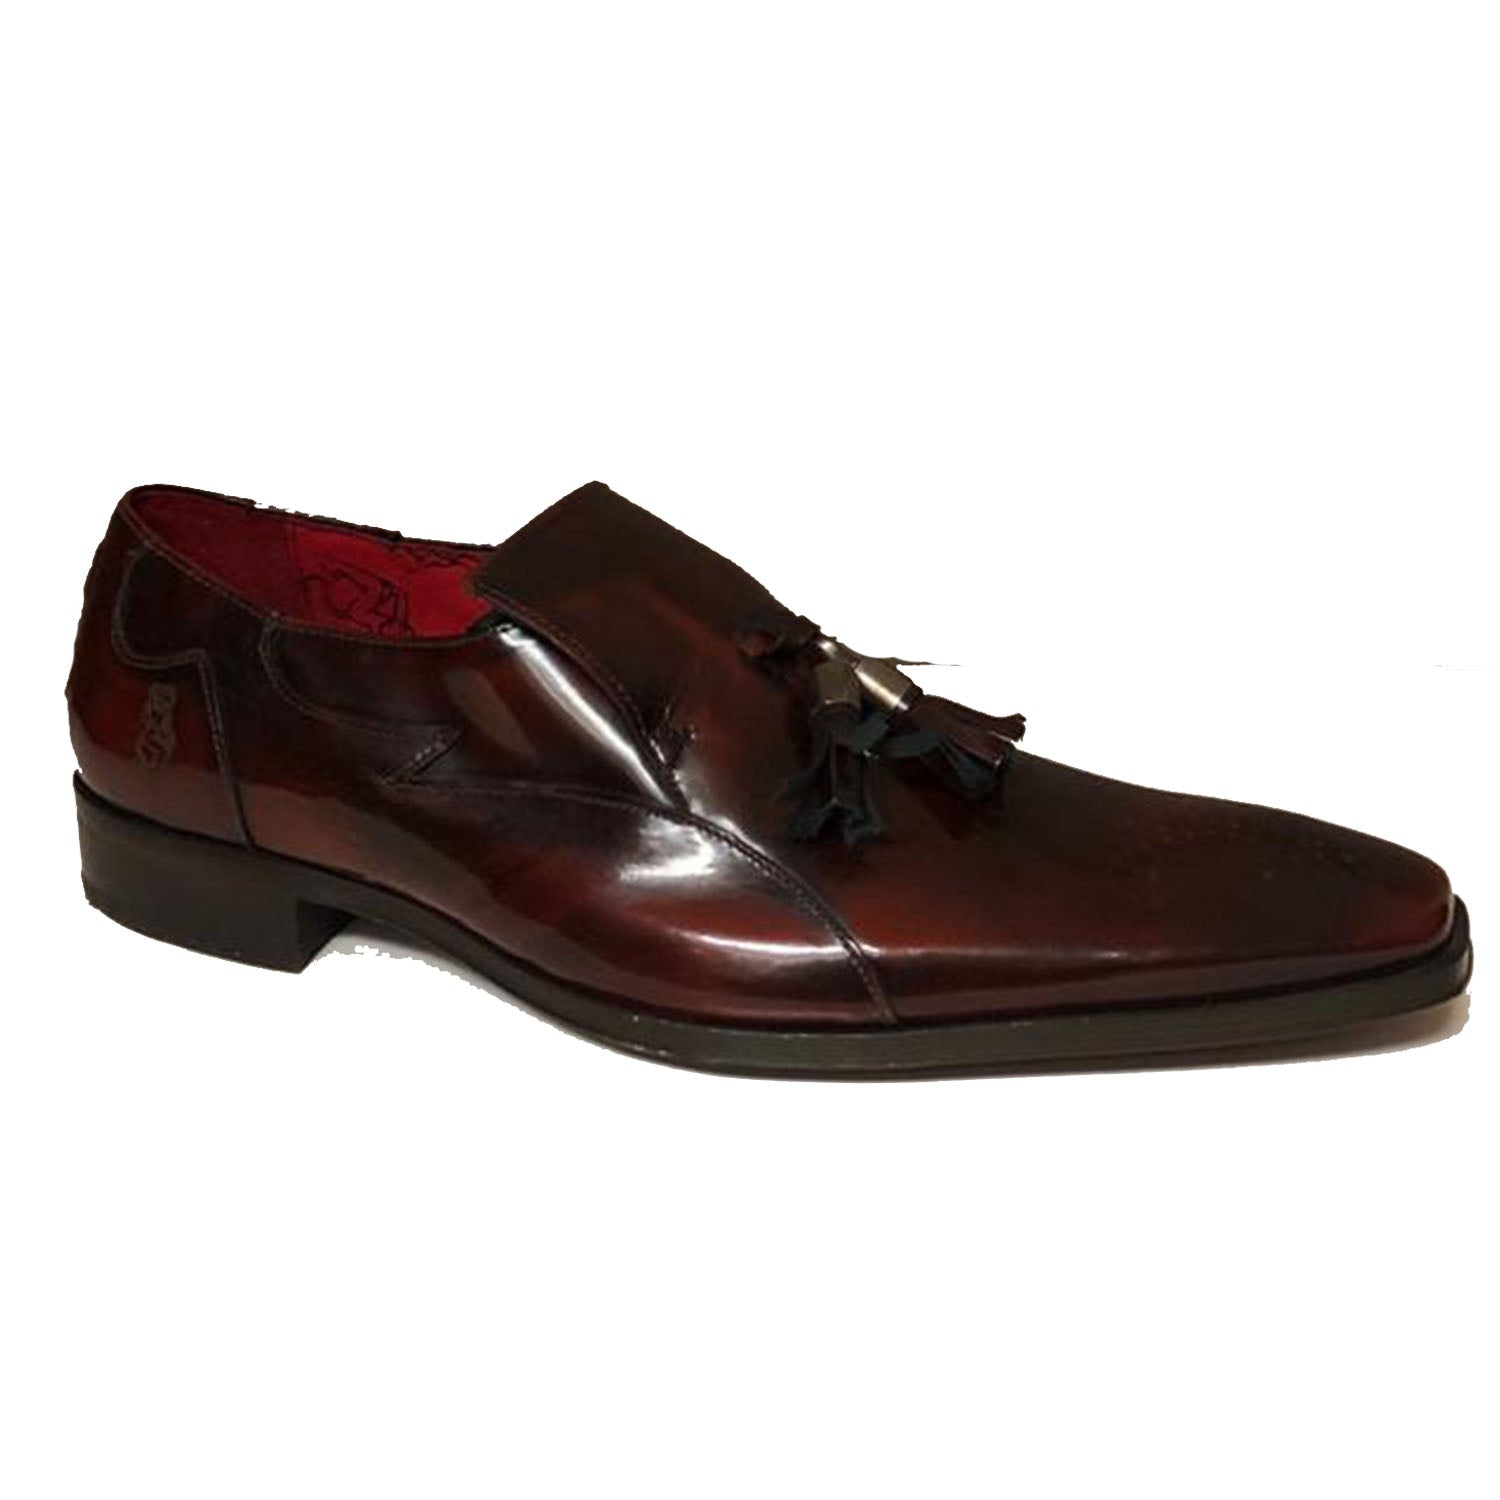 Jeffery West Burgundy Tassel Loafer